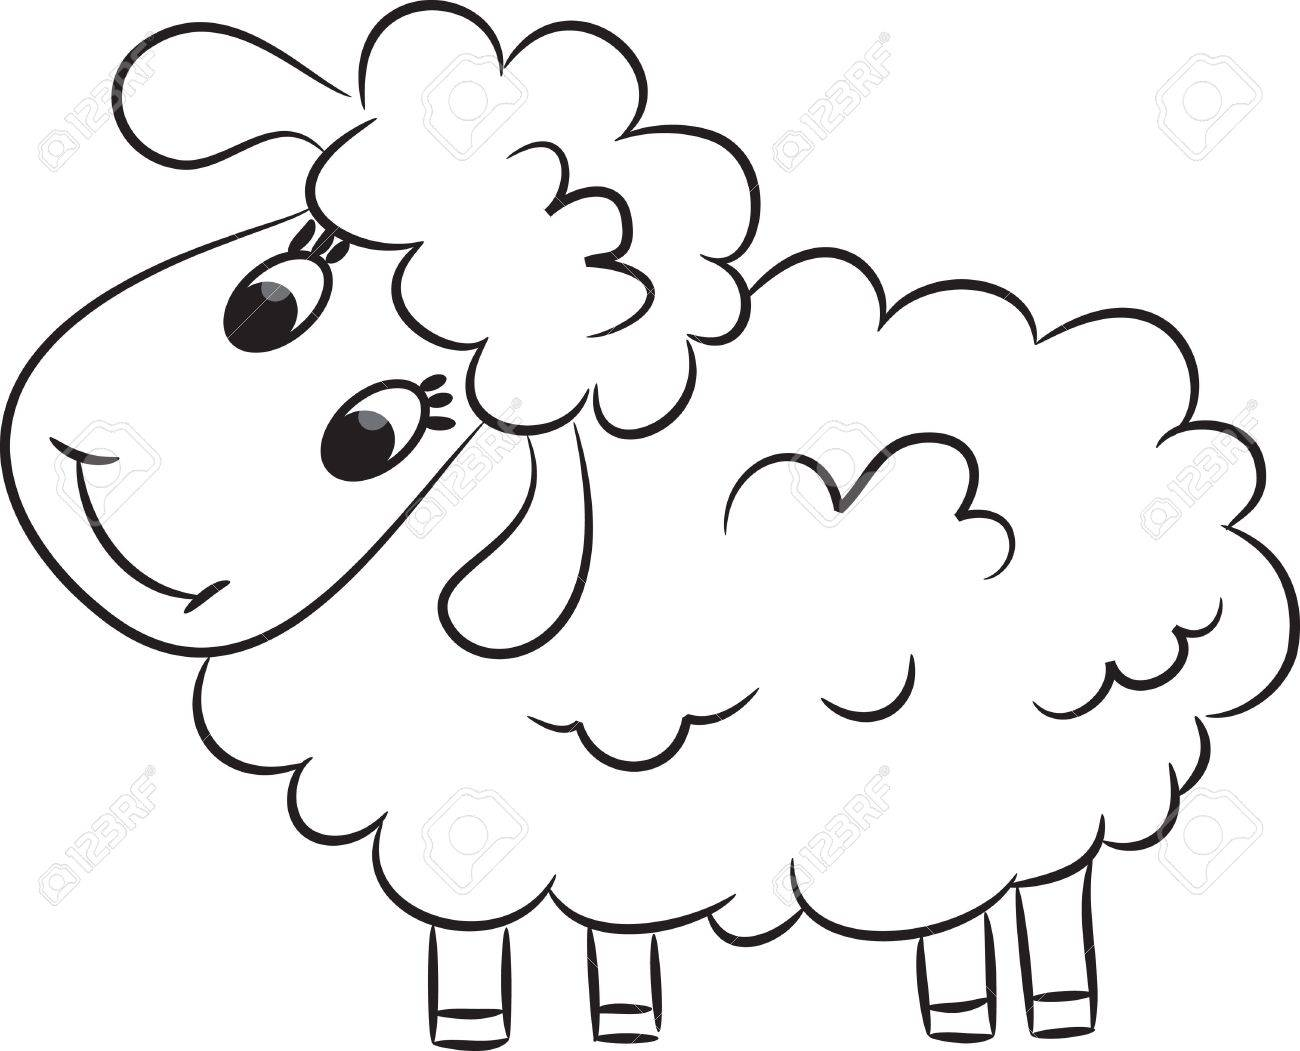 Cartoon sheep  Vector illustration Stock Vector - 15582044